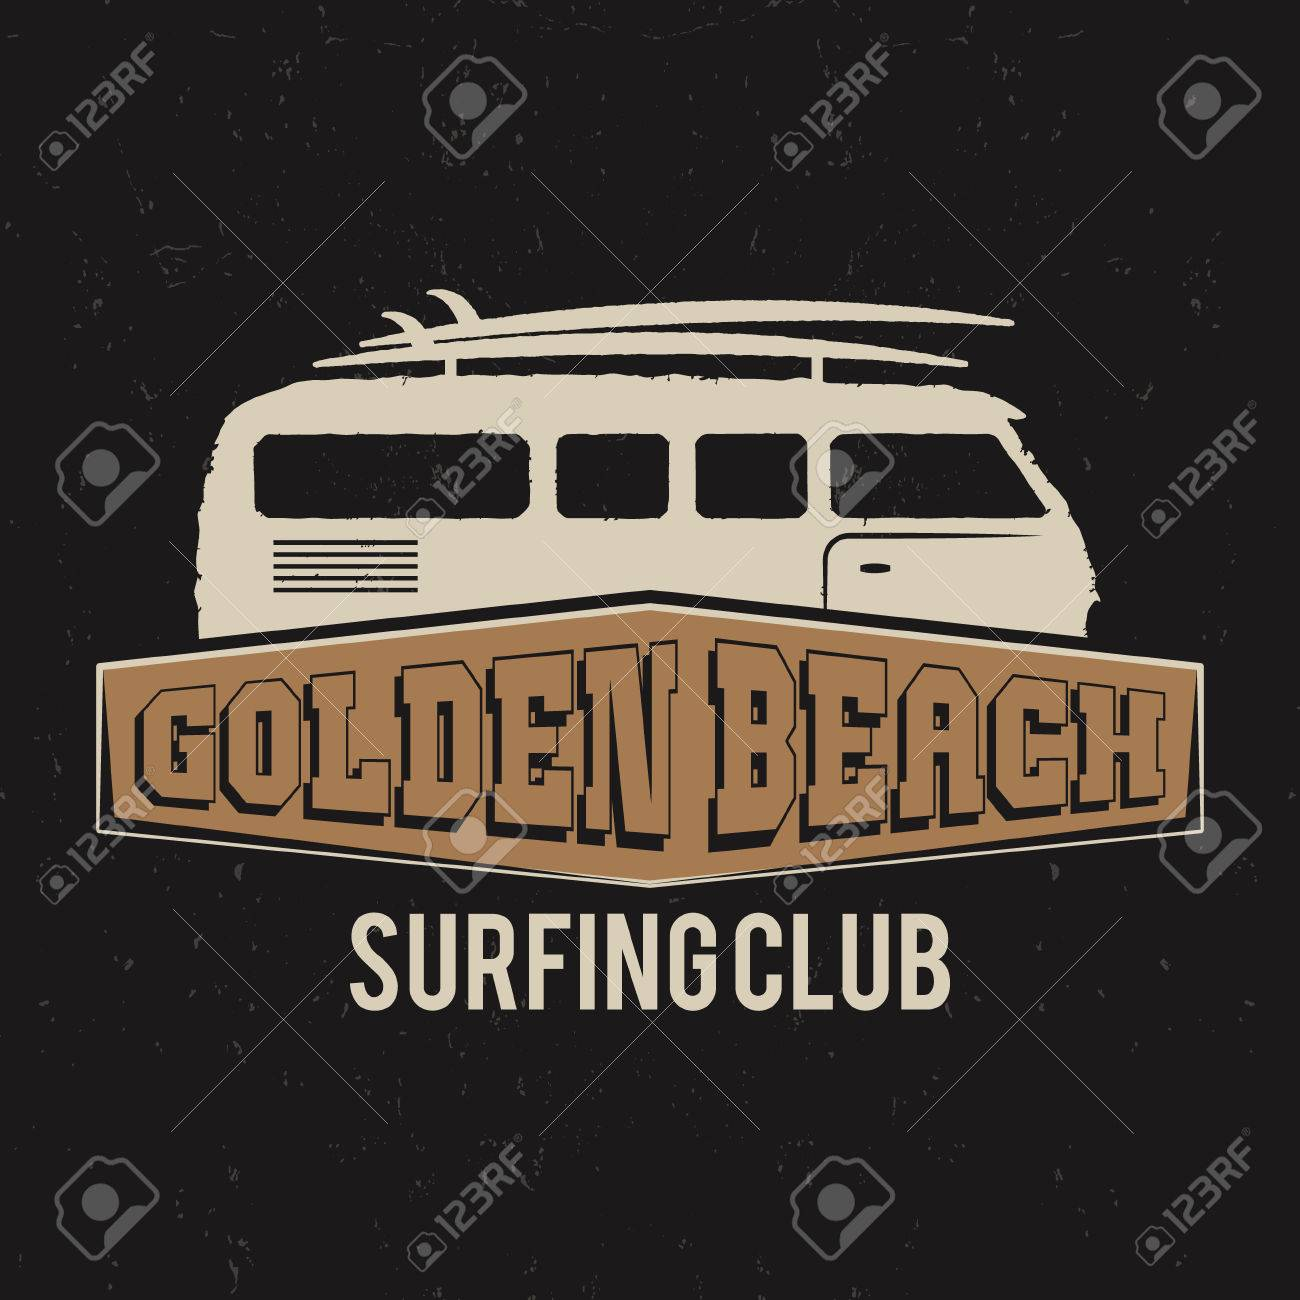 Vintage Surfing Club Tee Design Retro T Shirt Graphics And Emblem